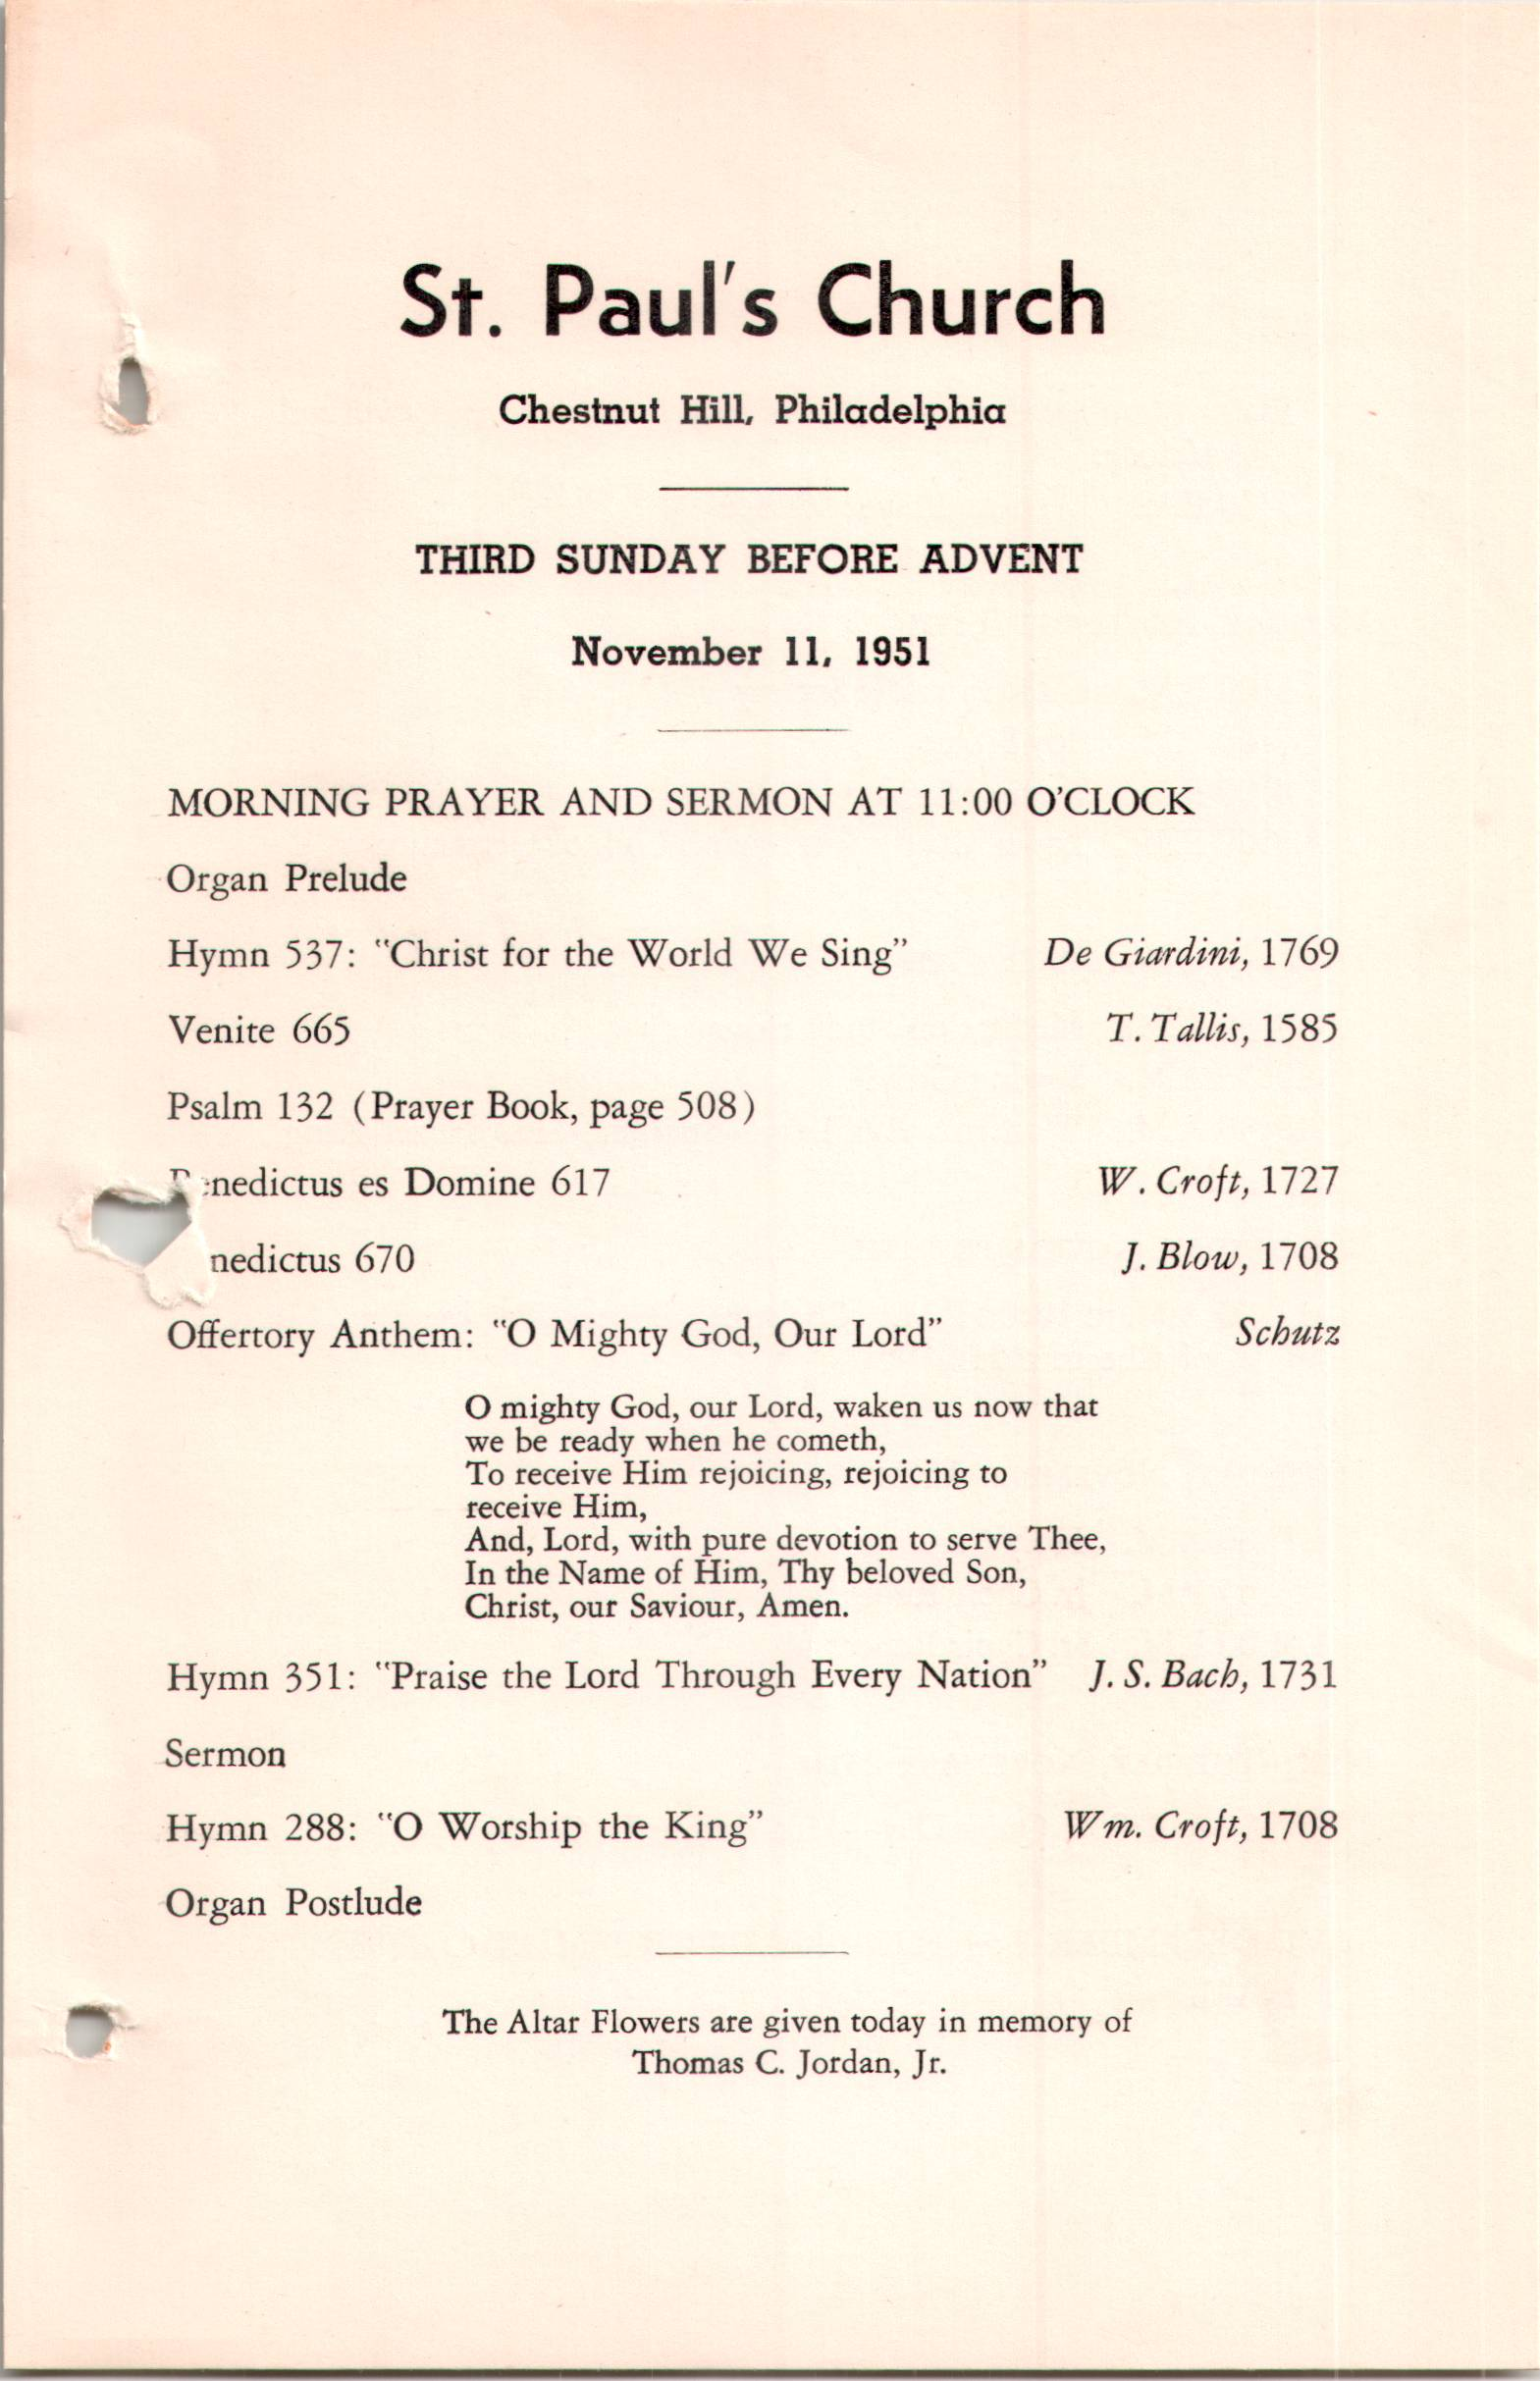 Service Leaflet for the Third Sunday before Advent at St  Paul's